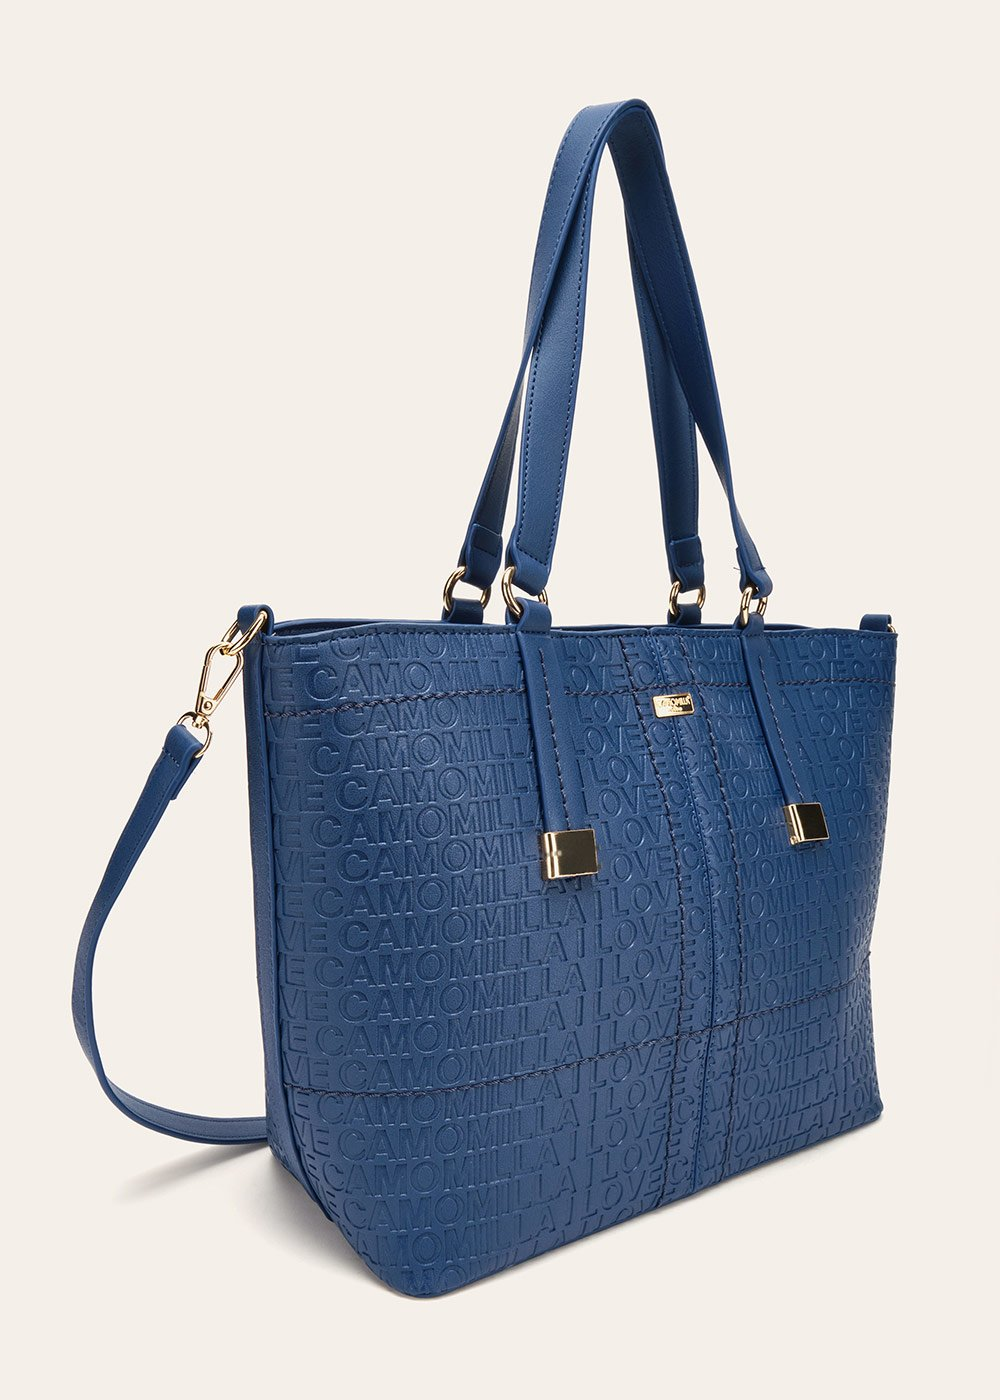 Shopping bag Berry logomania - Oltremare - Donna